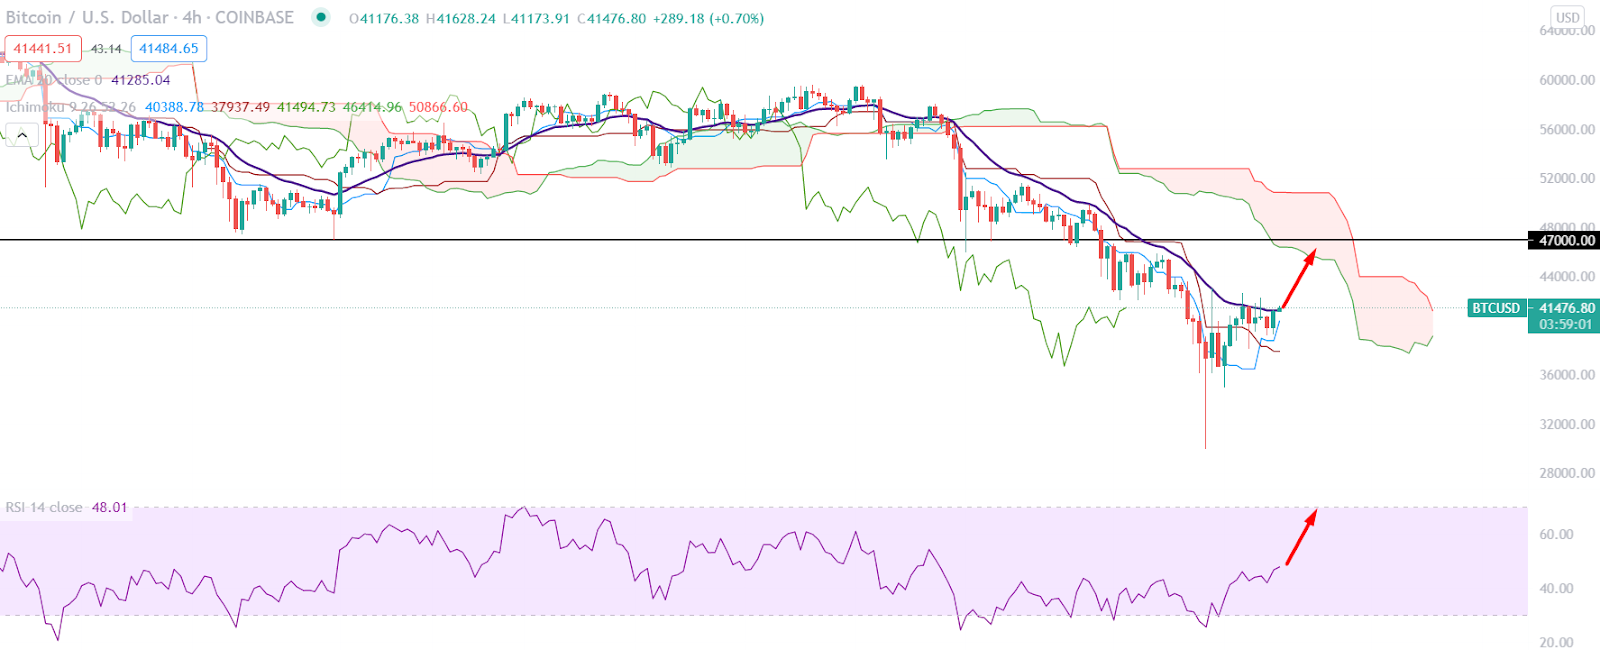 btcusd h4 - Based on the Ichimoku Cloud on the BTCUSD H4 chart, the price rallied below the Kumo Cloud after a strong bearish H4 close on 12 May 2021.